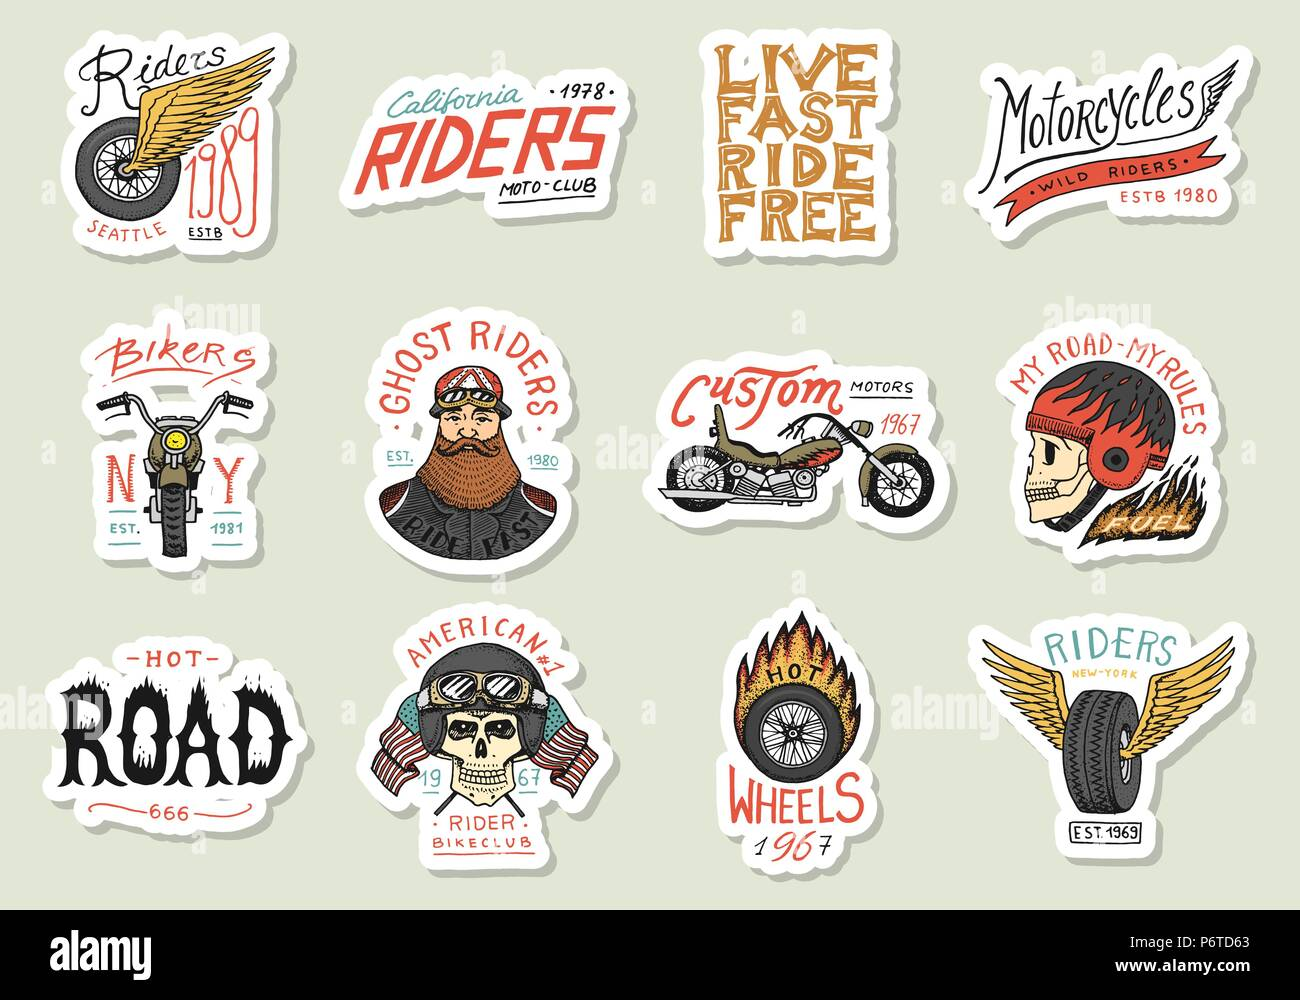 Biker club stickers templates vintage custom motorcycle and skull emblems labels badges for t shirt monochrome retro style classic sport motorbike with